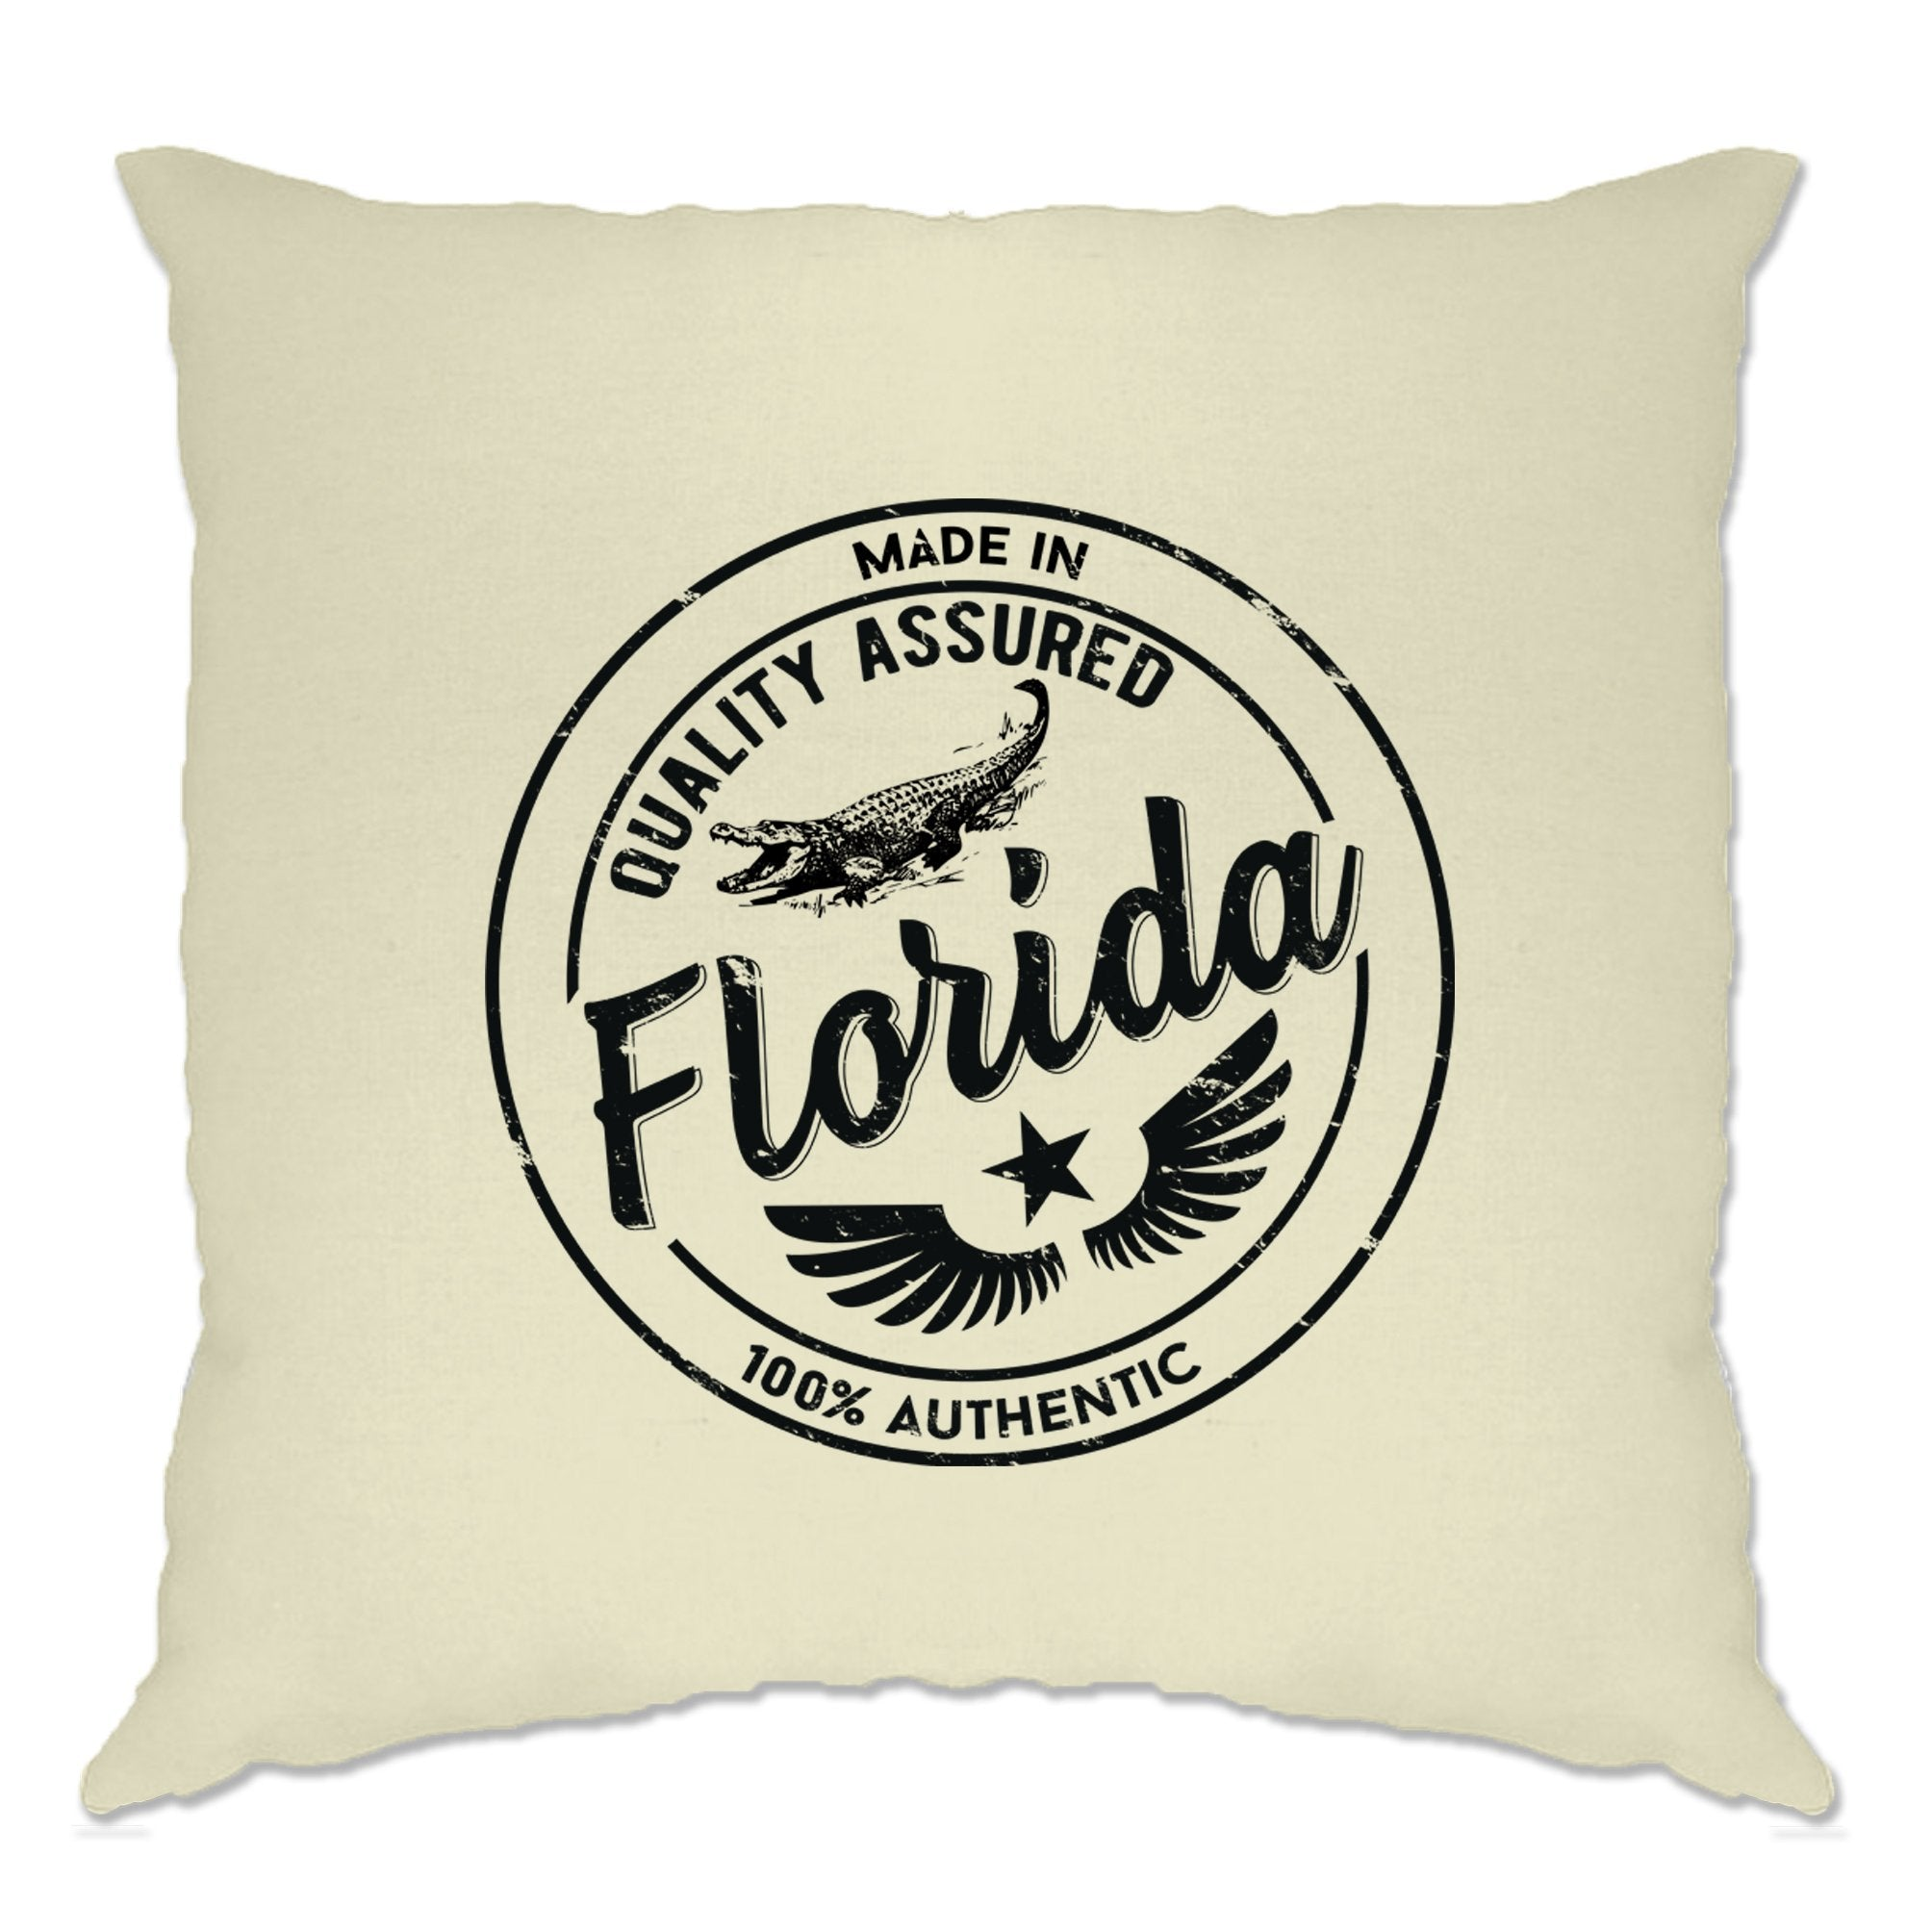 Hometown Pride Cushion Cover Made in Florida Stamp